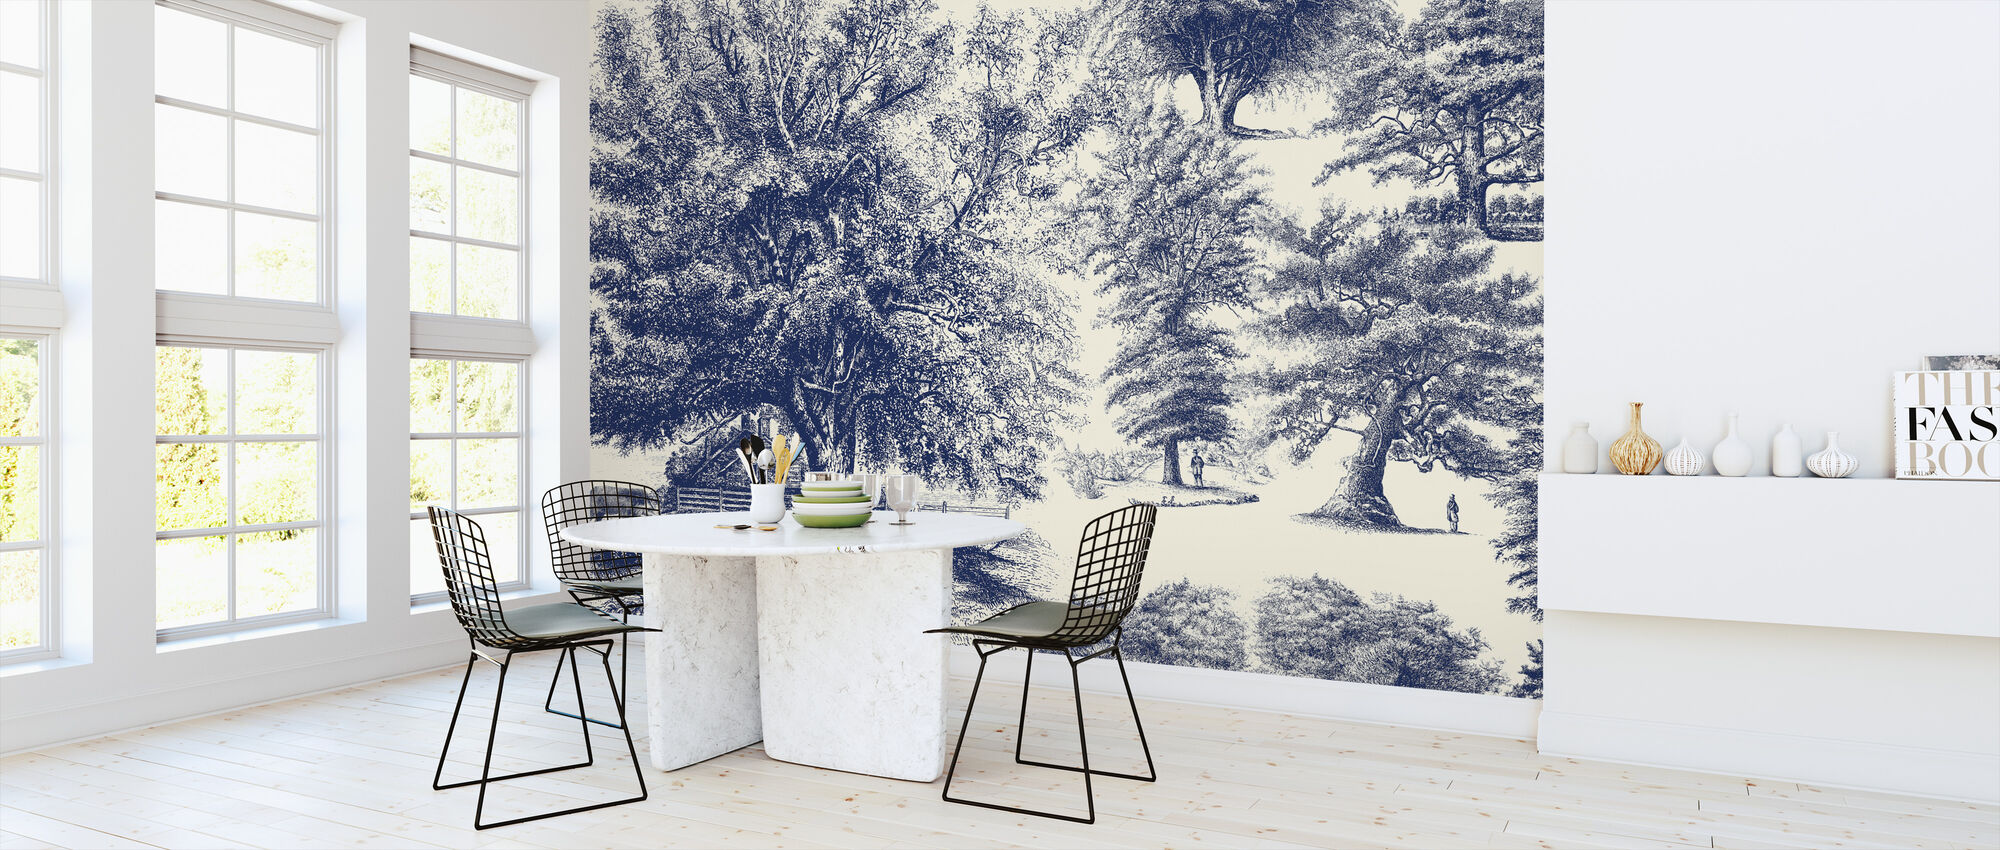 Under Consent of the King - Wallpaper - Kitchen